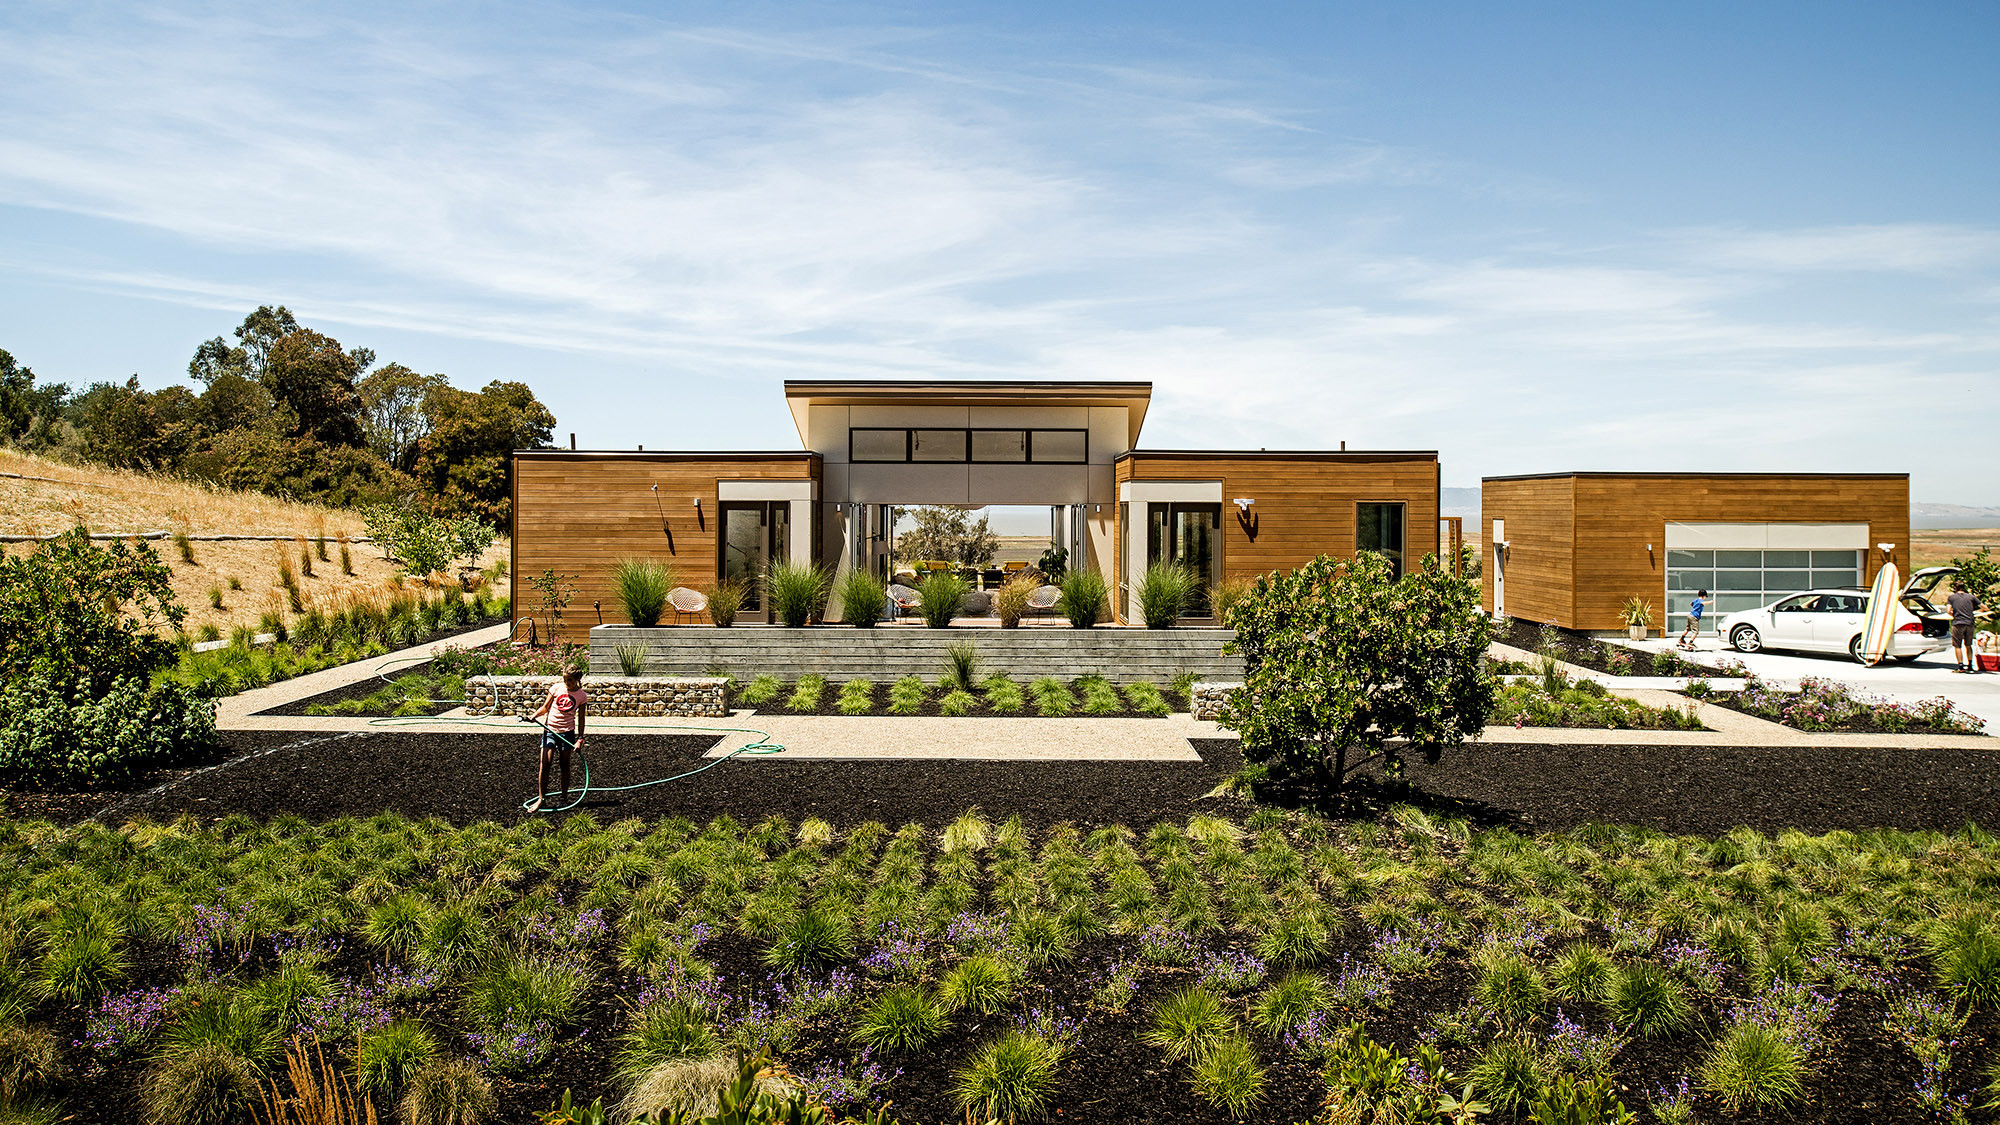 What Is A Prefab Home prefab homes for sophisticated tastes - la times